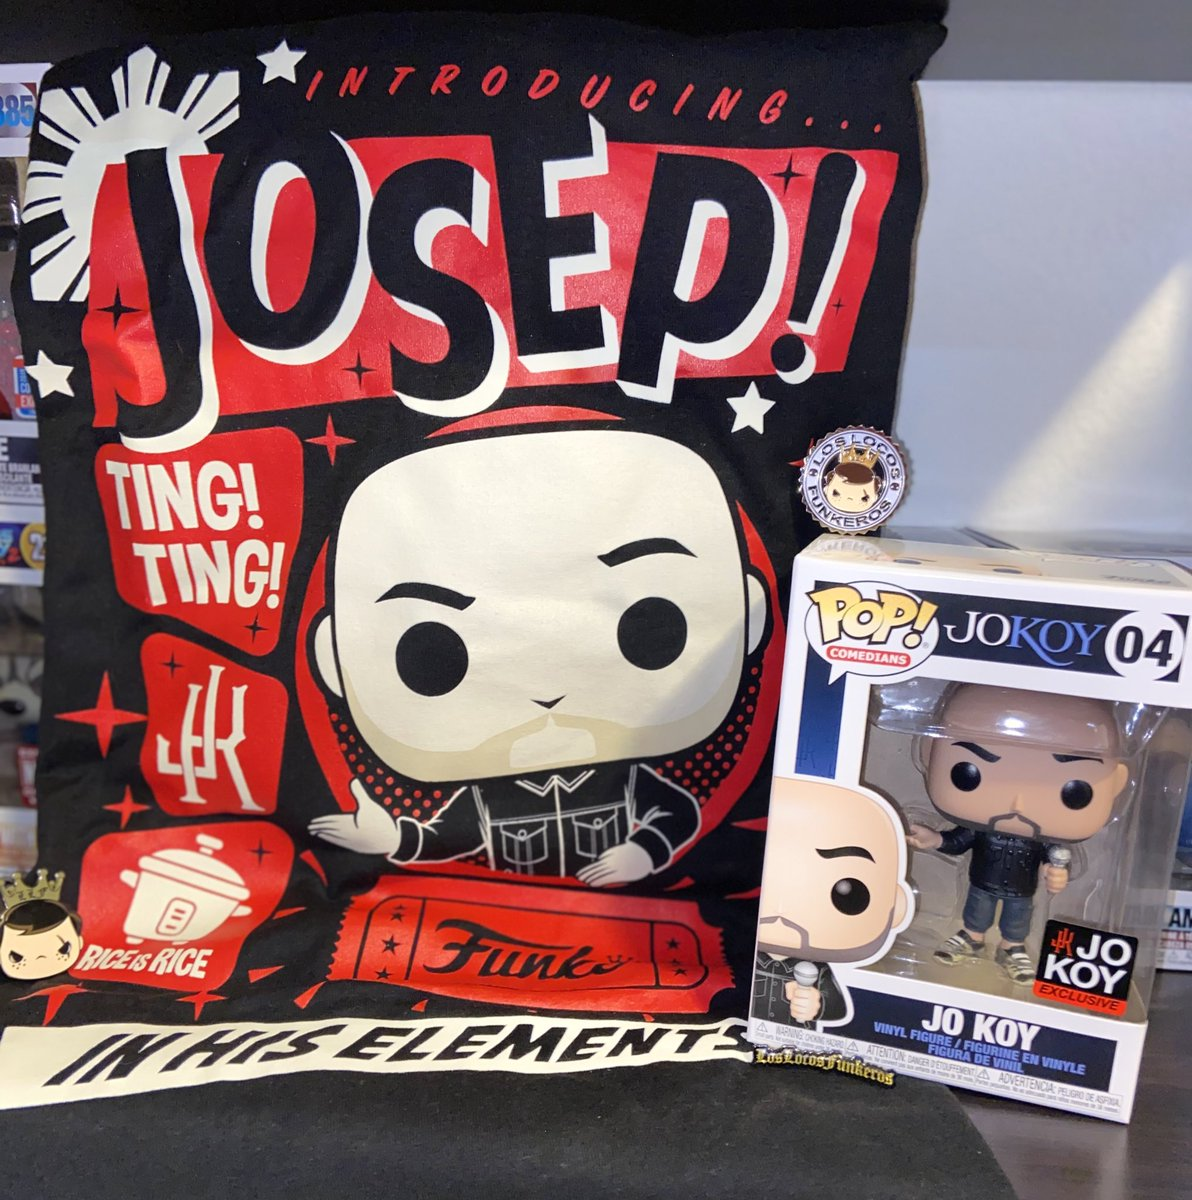 Mail Call!!! My @Jokoy #Funko & #PopTee Arrived Yesterday! I Love The Pop & The Tee Is Too Cute! #llfpincheckfridays #LLF #Jokoy @LocosFunkeros @OriginalFunko https://t.co/tM4FjkKP2a